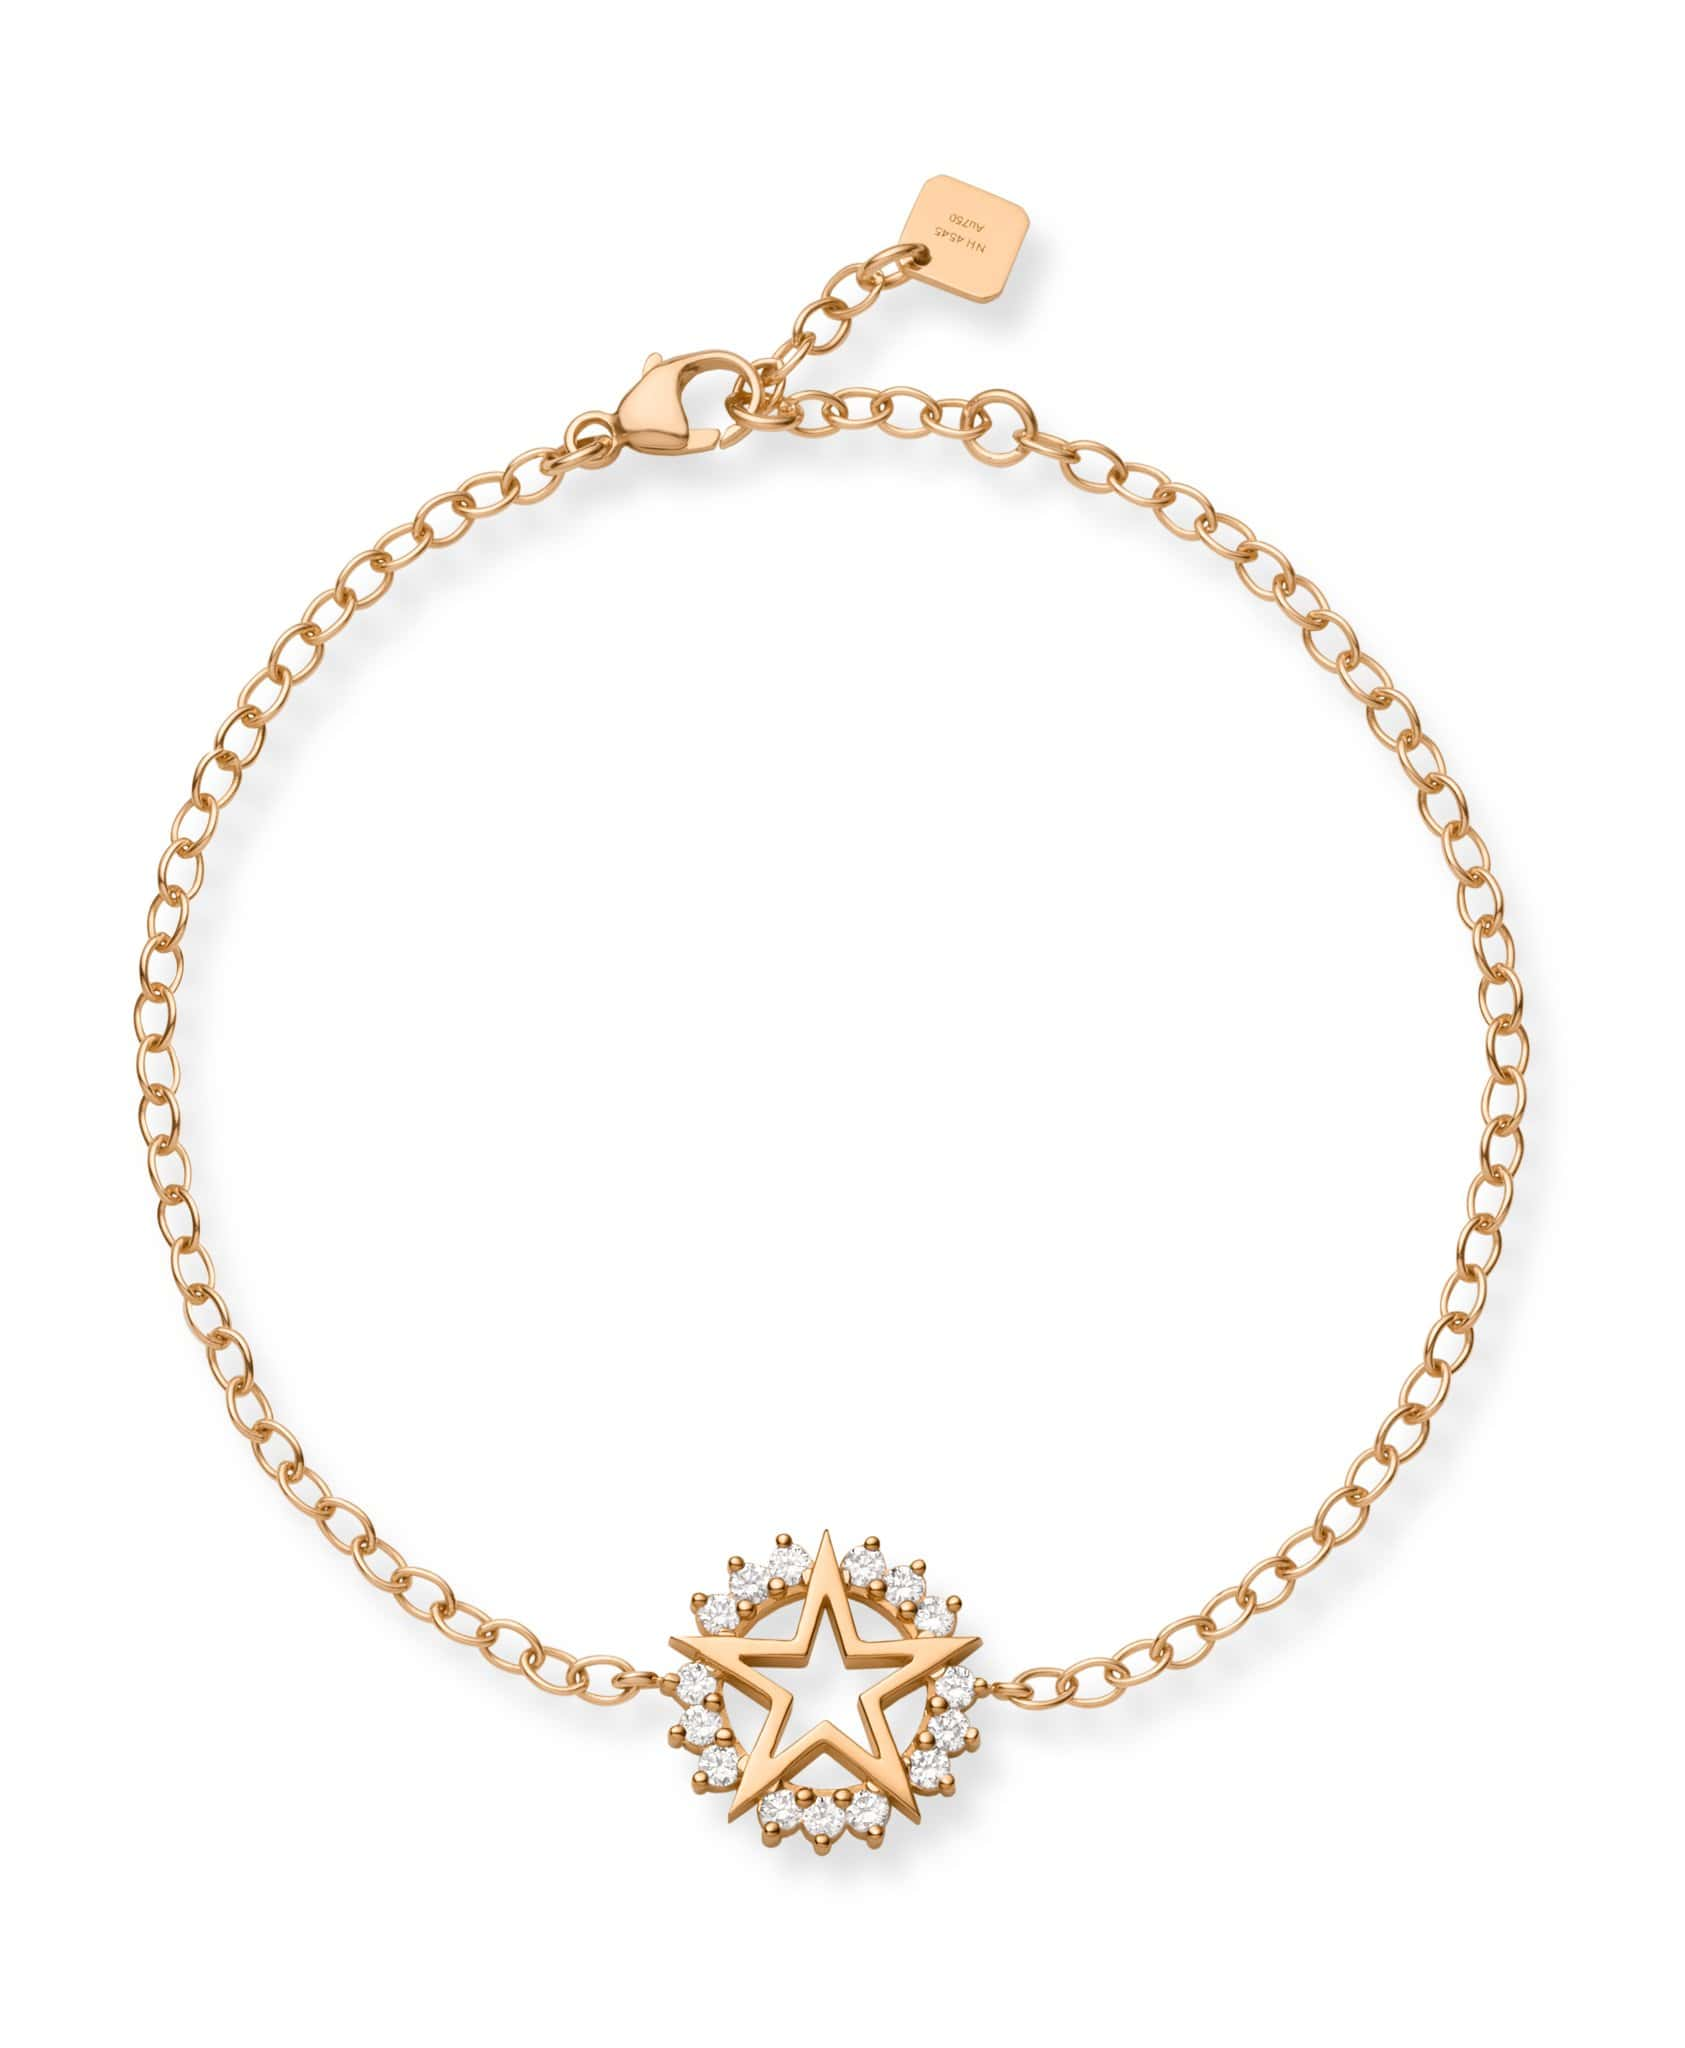 Medium Star Bracelet: Discover Luxury Fine Jewelry | Nouvel Heritage || Rose Gold